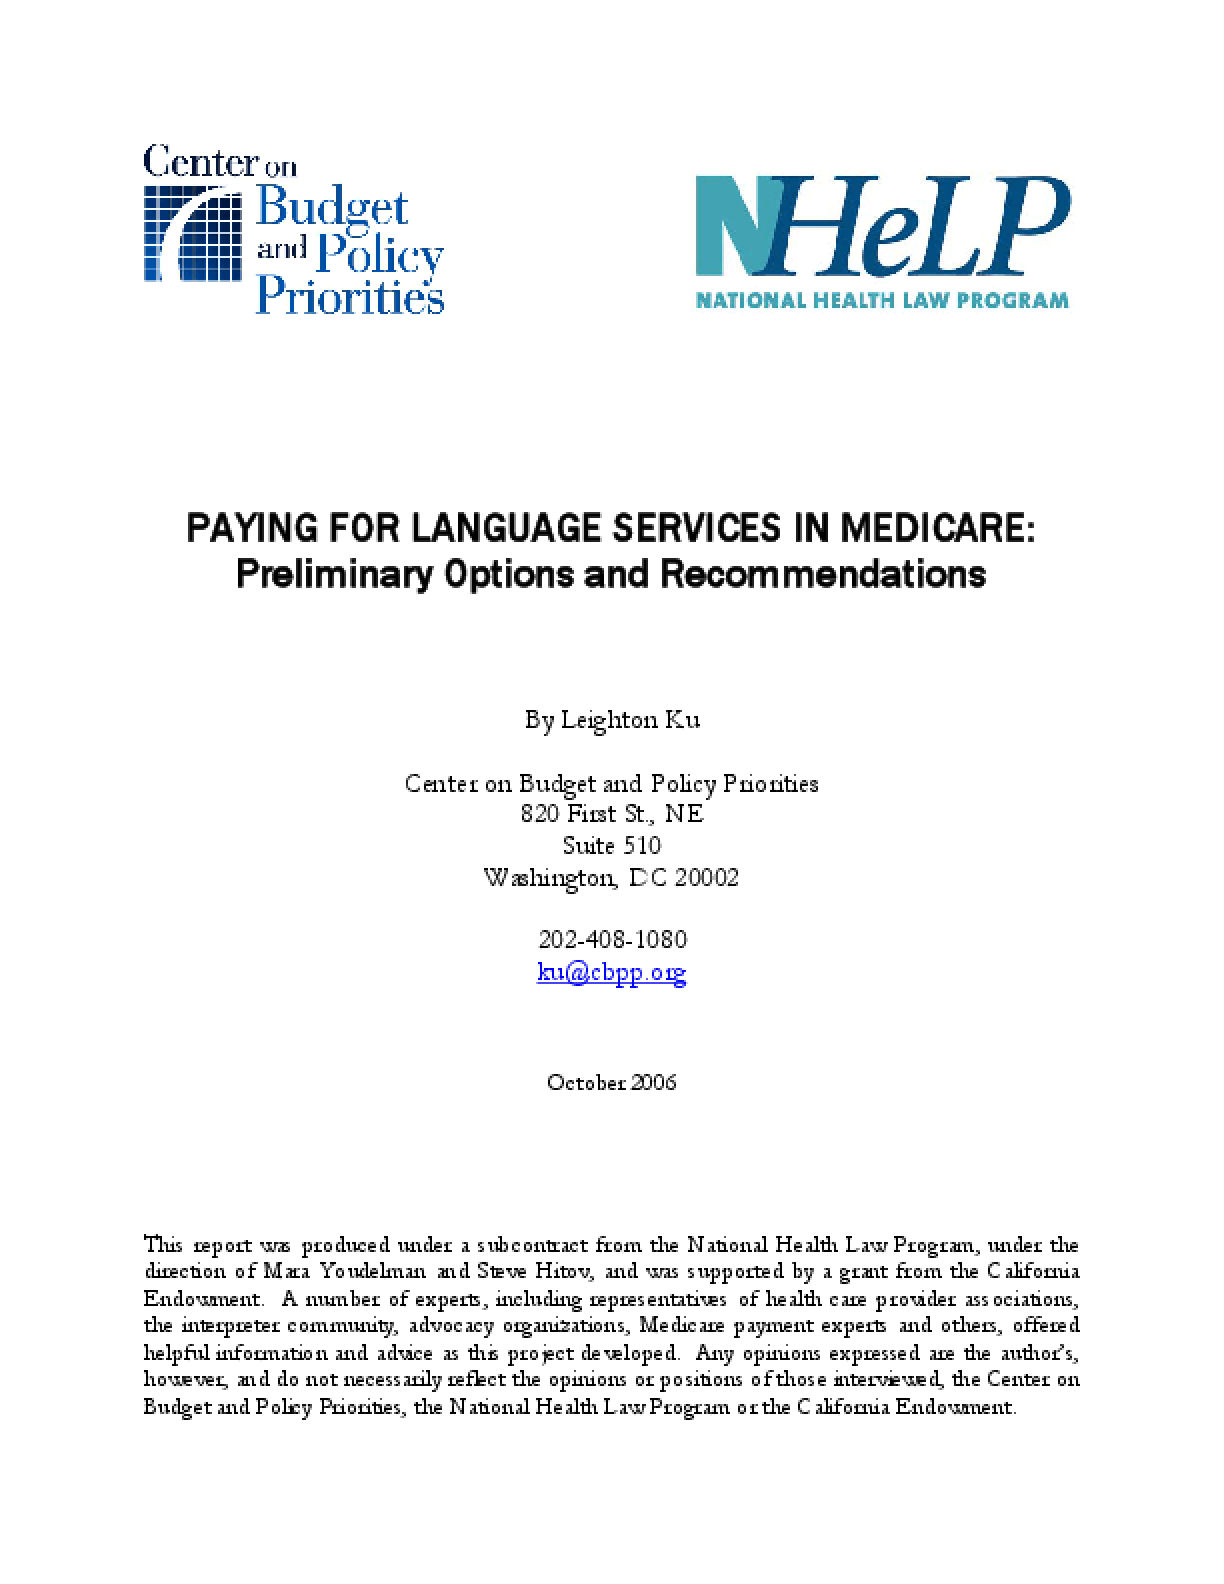 Paying for Language Services in Medicare: Preliminary Options and Recommendations